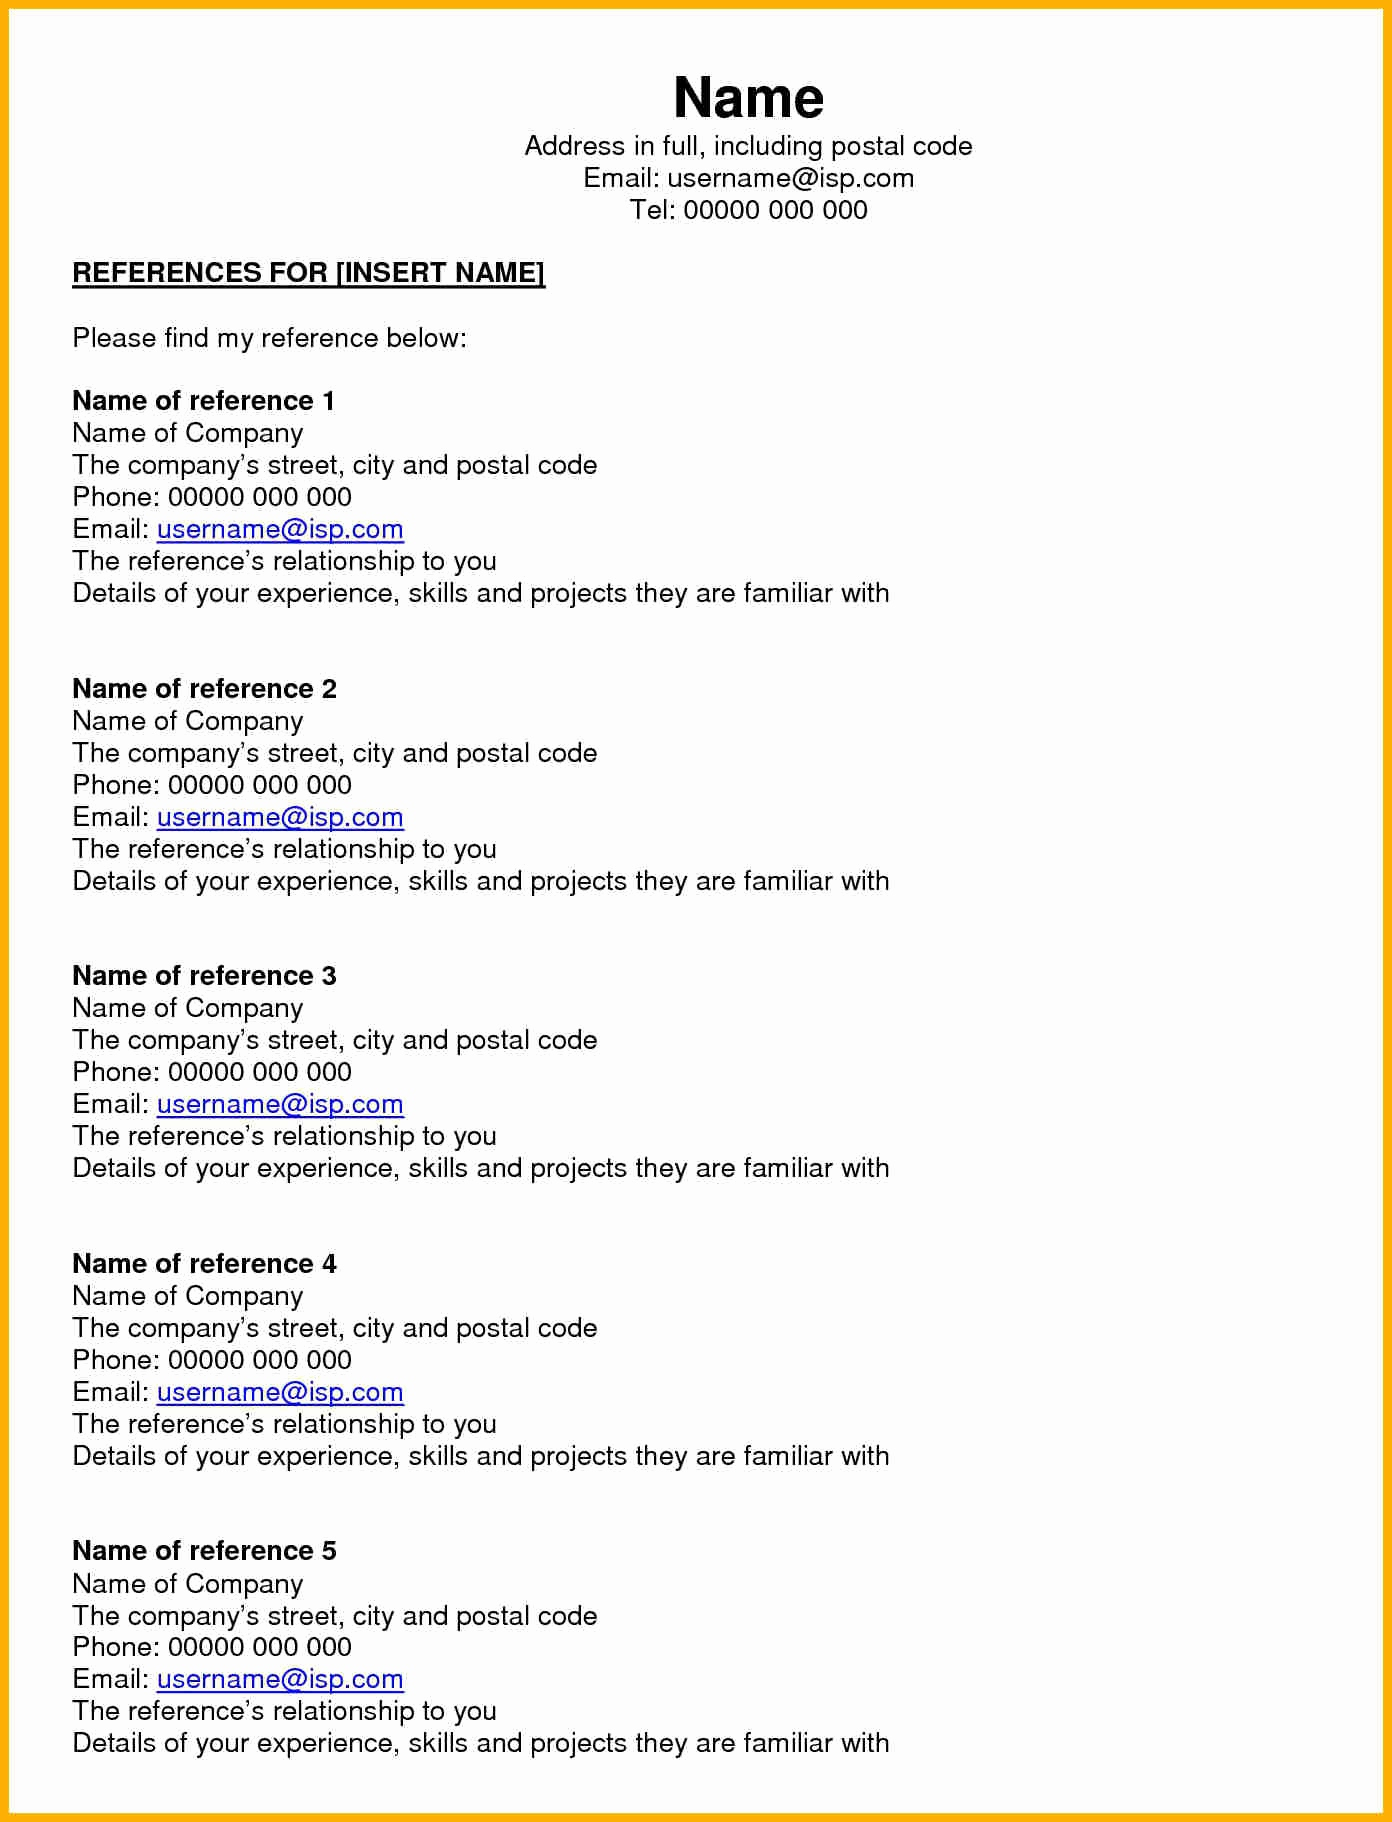 Resume Reference Page Template Beautiful 5 Job Reference Page